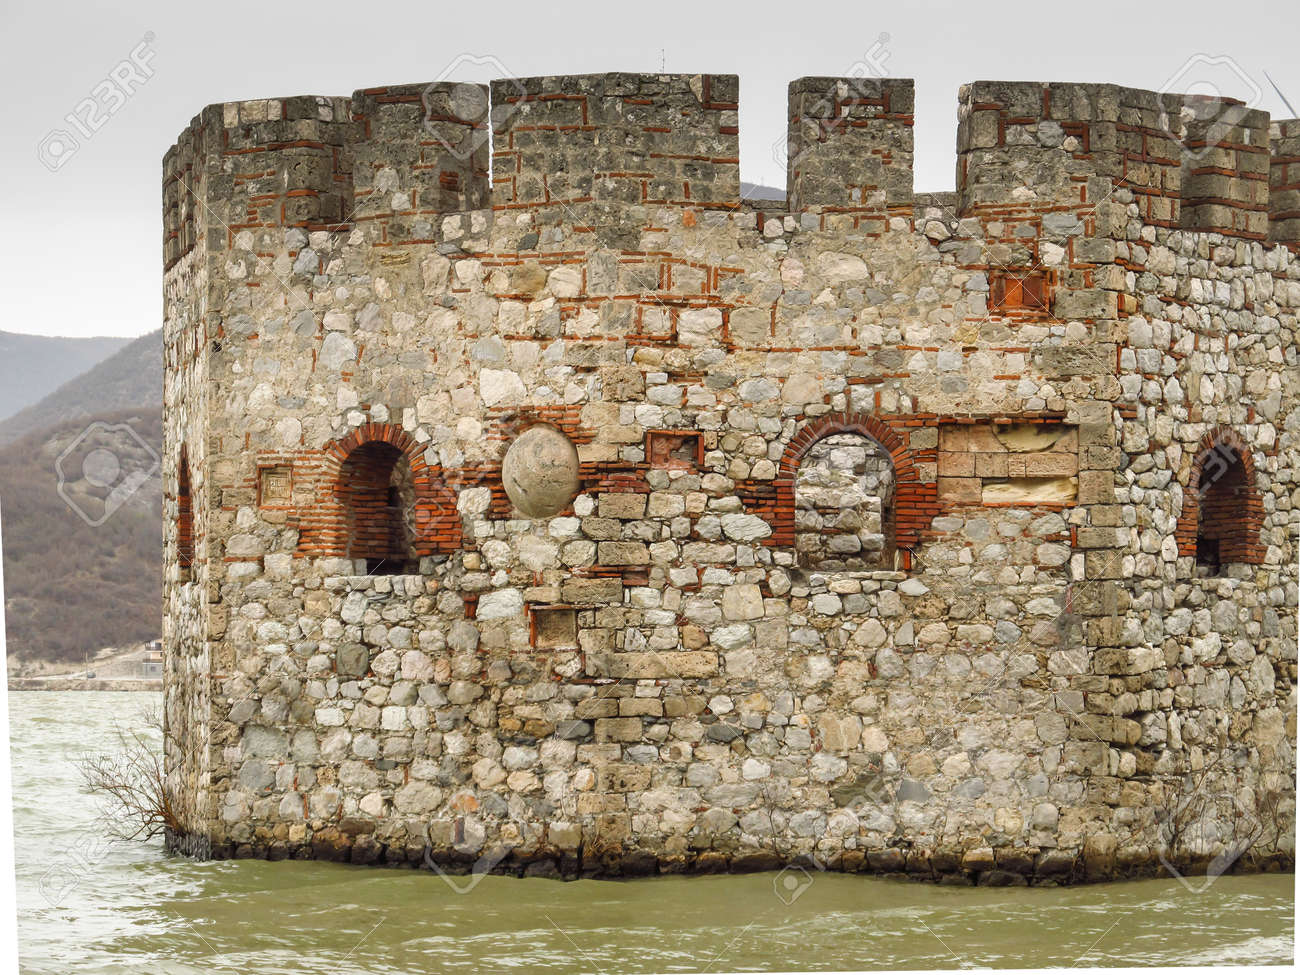 tower and the ruins of the castle Golubac in Serbia on the Danube - 157912286